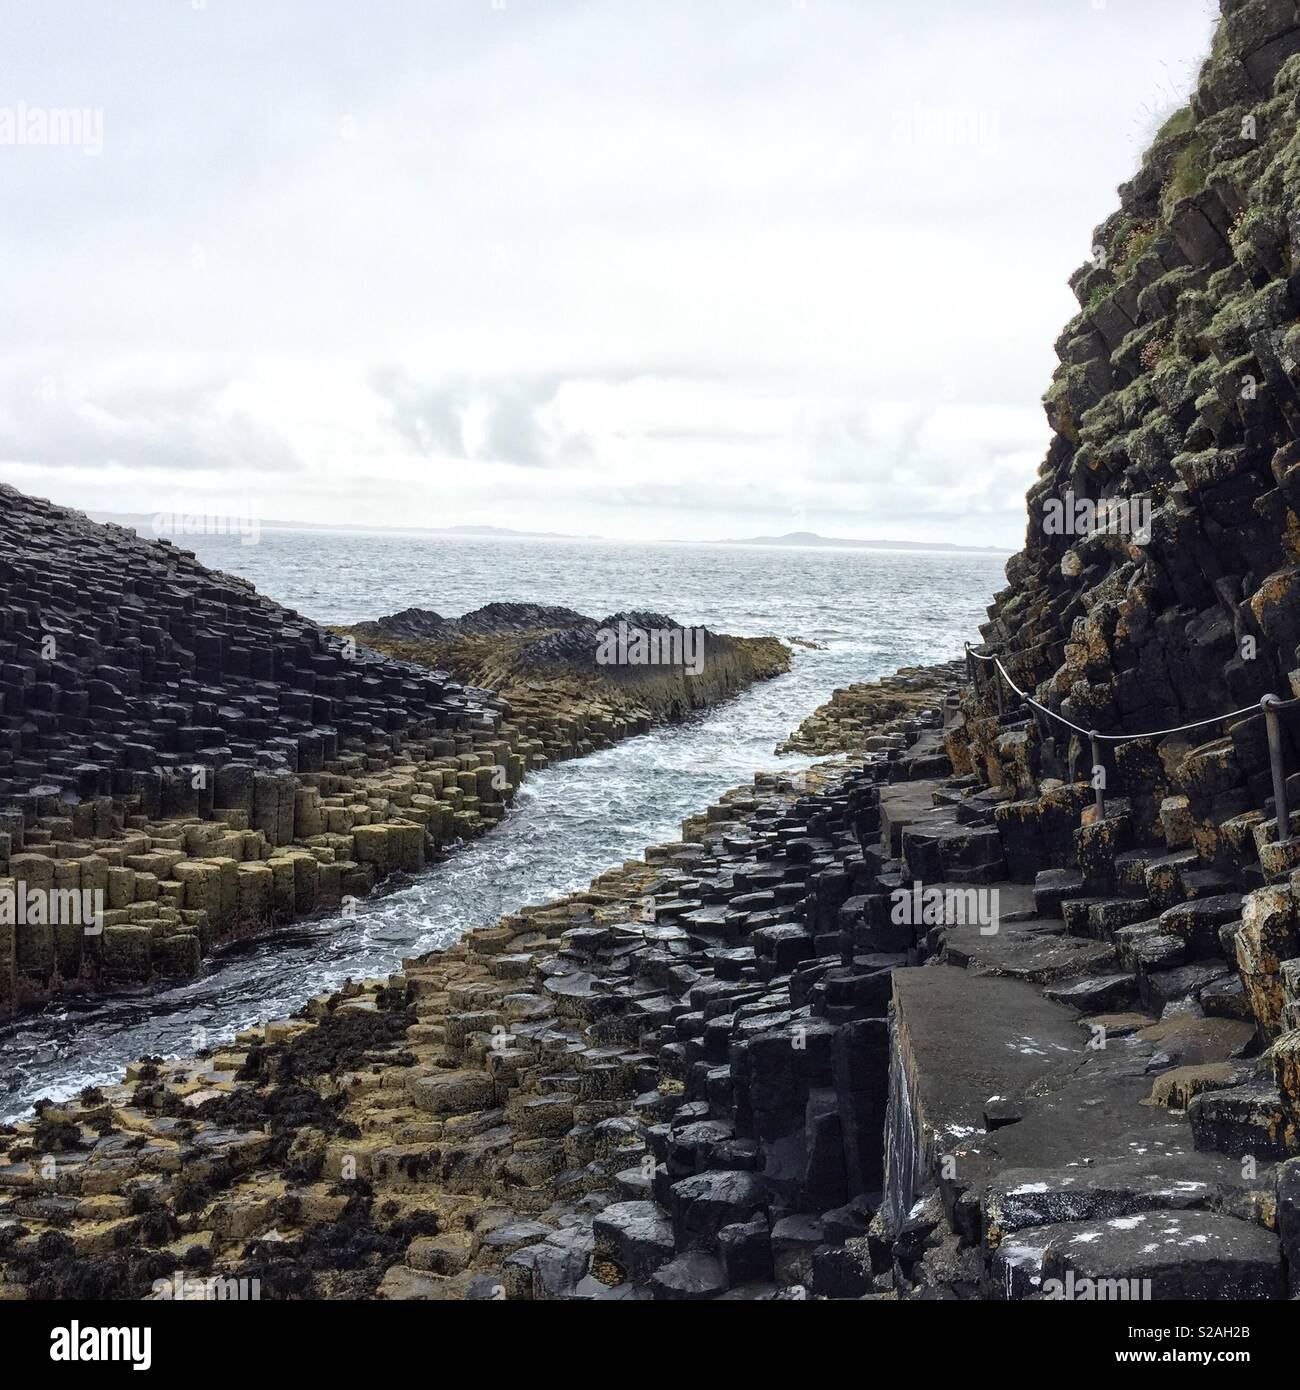 Isle of Staffa, Scotland - Stock Image